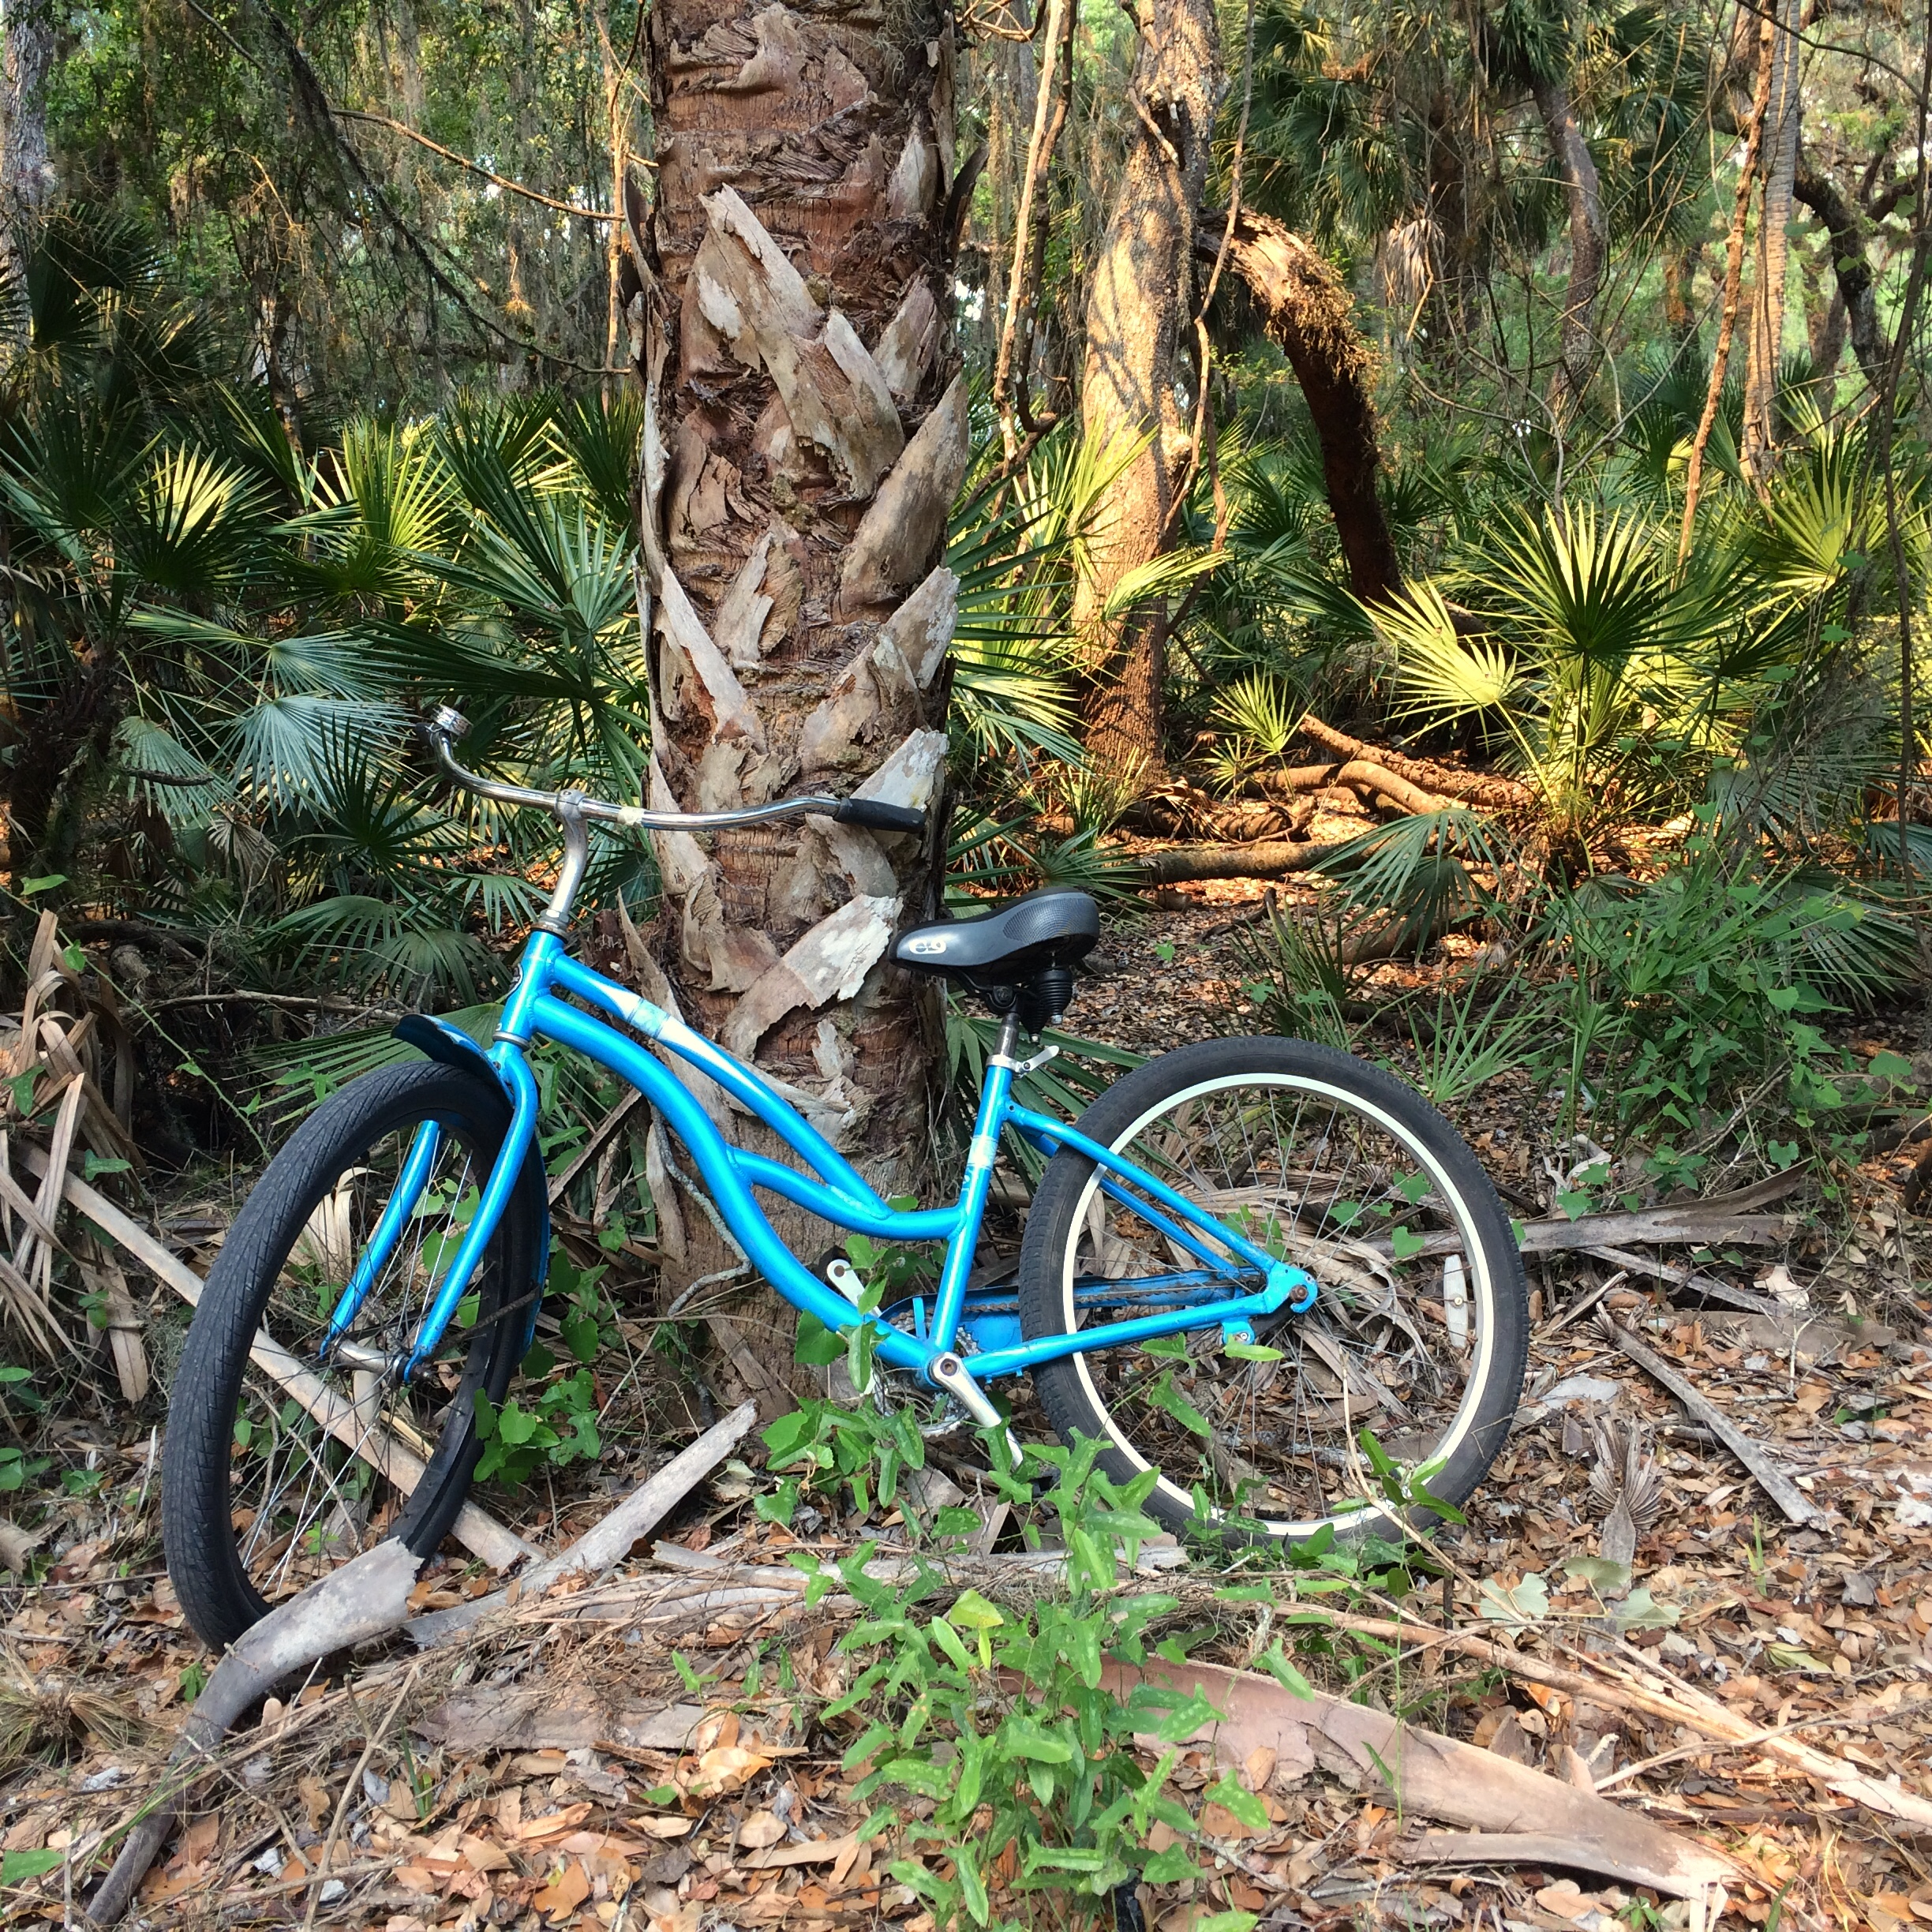 Stopping along the road in Myakka River State Park.